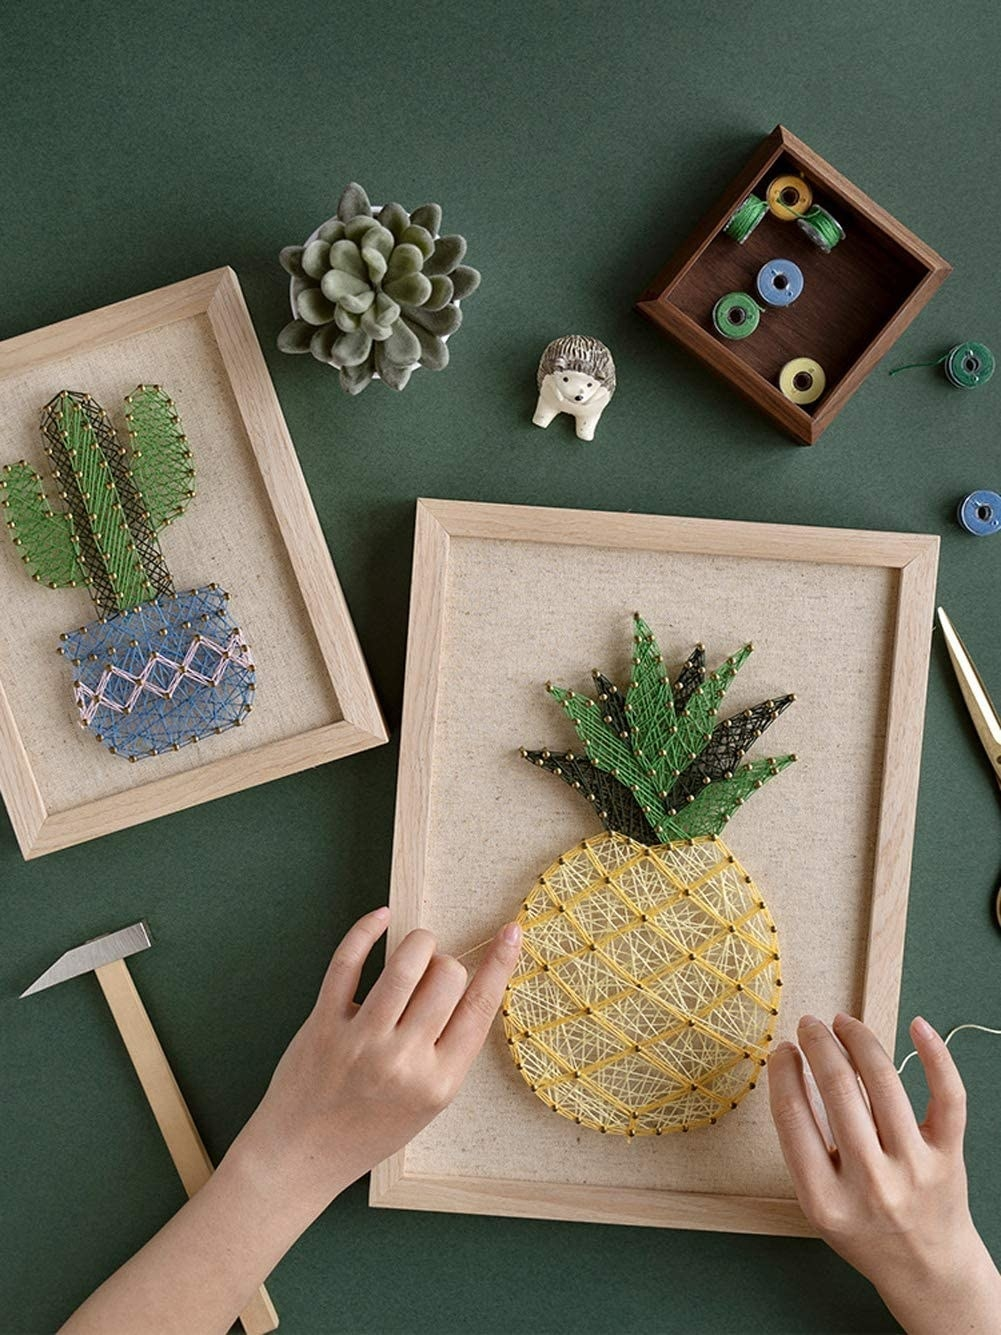 A person using pegs and string to create a pineapple image within a wooden frame